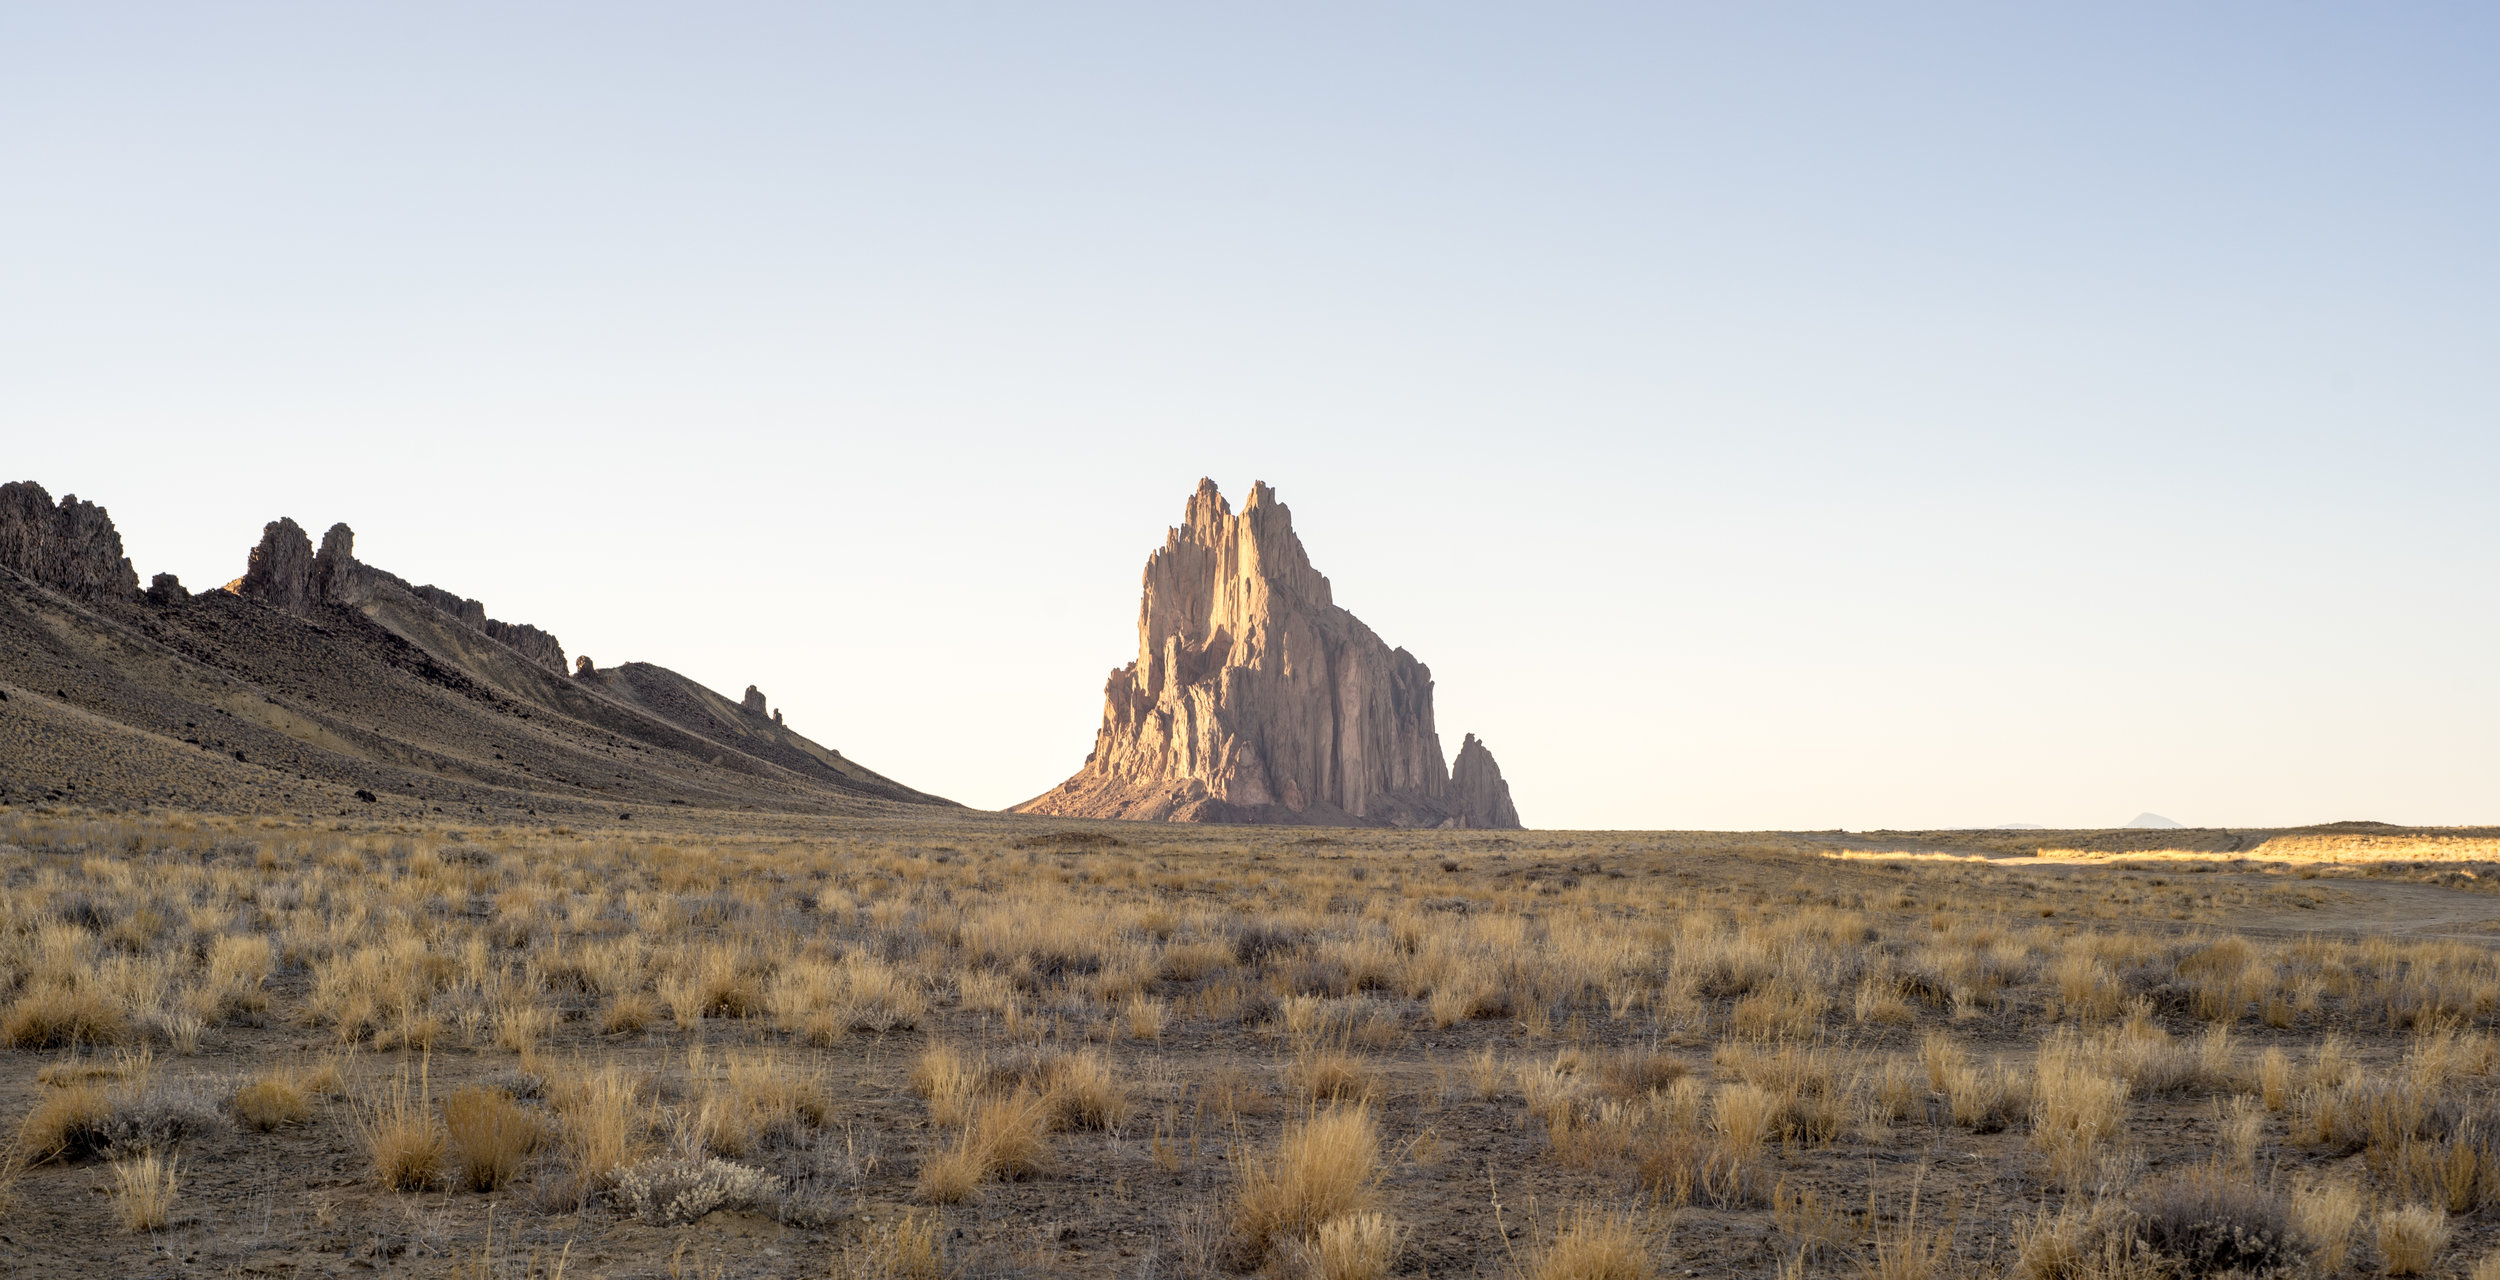 Stunning beauty of Shiprock from a little over 2 miles away. The decision to watch the sunset from a ridge overlooking the monolith was the best decision we made for that trip.